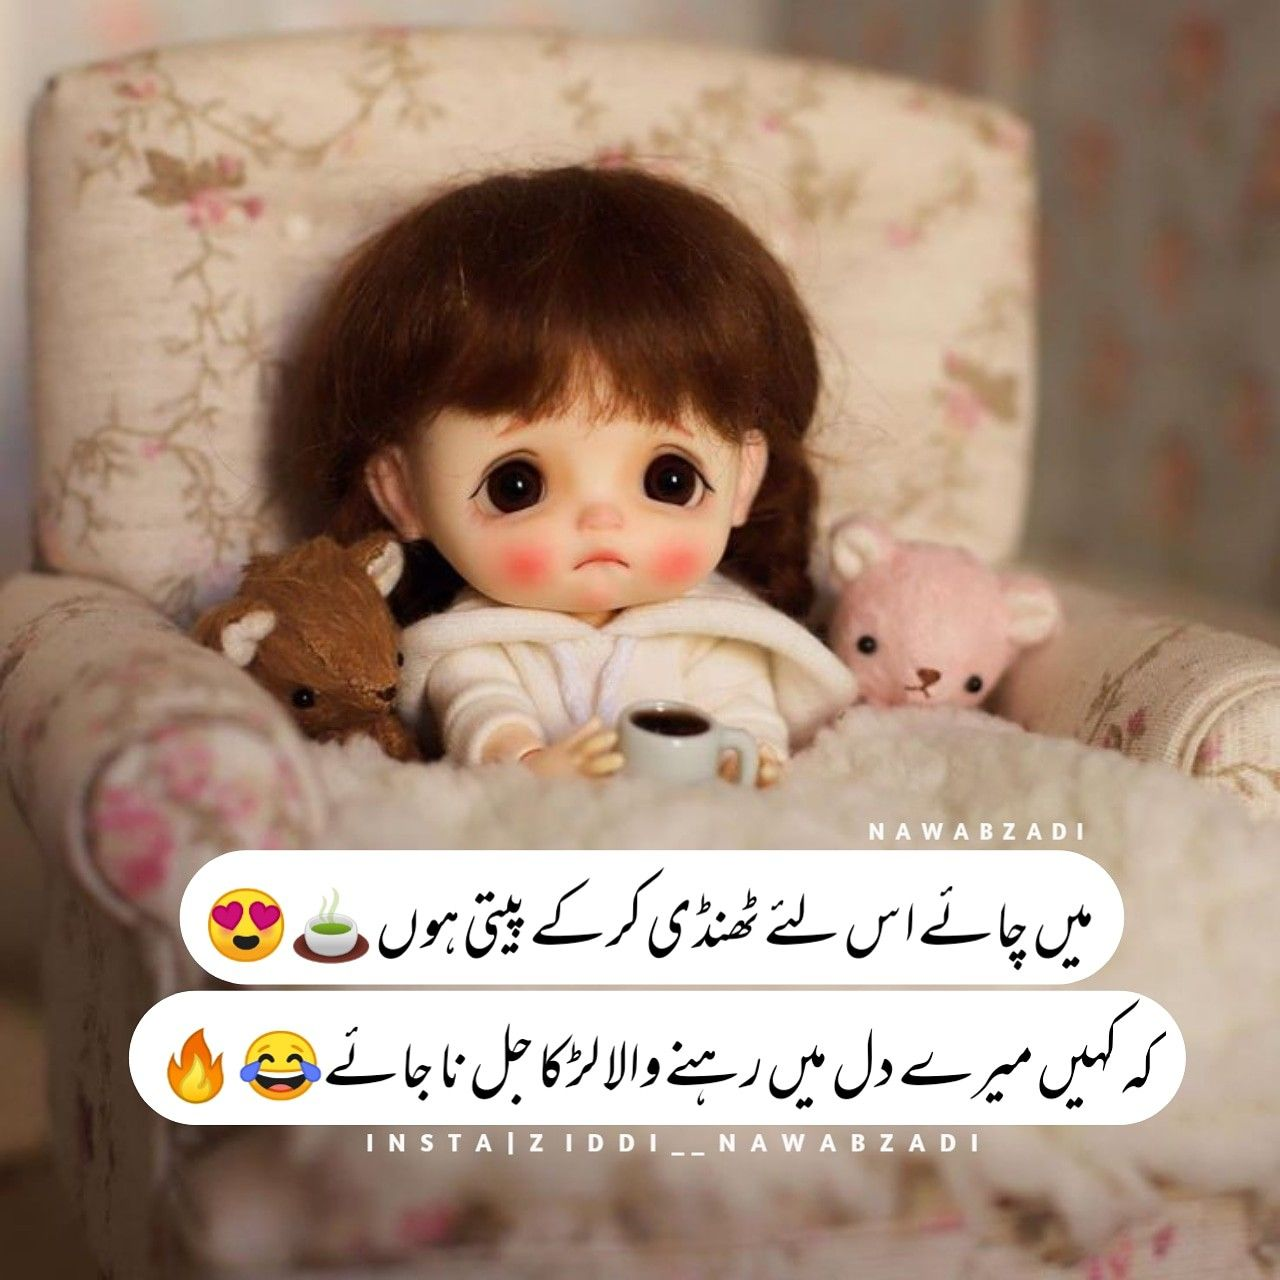 Pin By Ziddi Nawabzadi On Nawabzadi Writes Queen Quotes Funny Funny Girl Quotes Cute Relationship Quotes